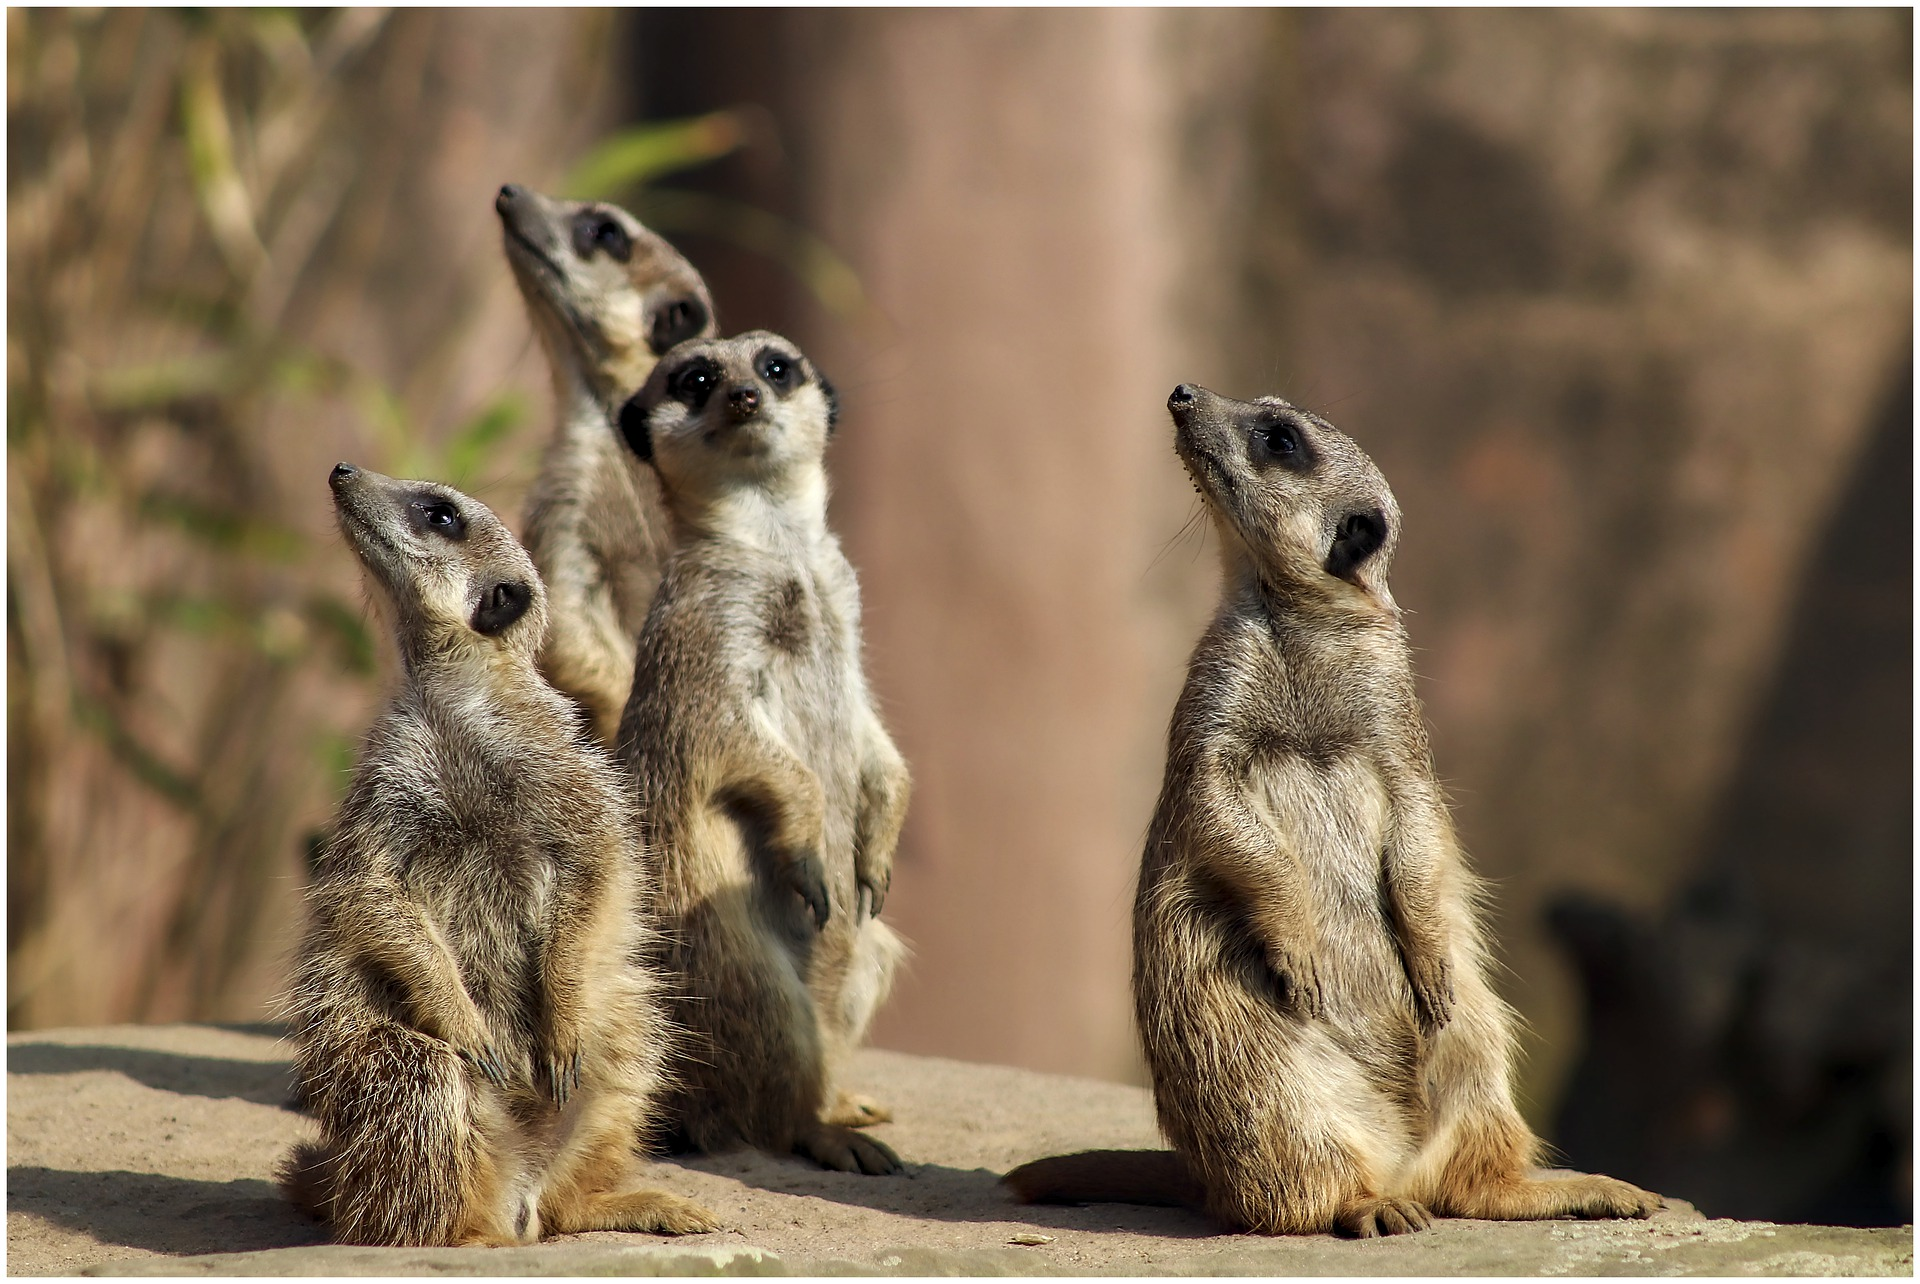 Why is a meerkat always on the lookout?